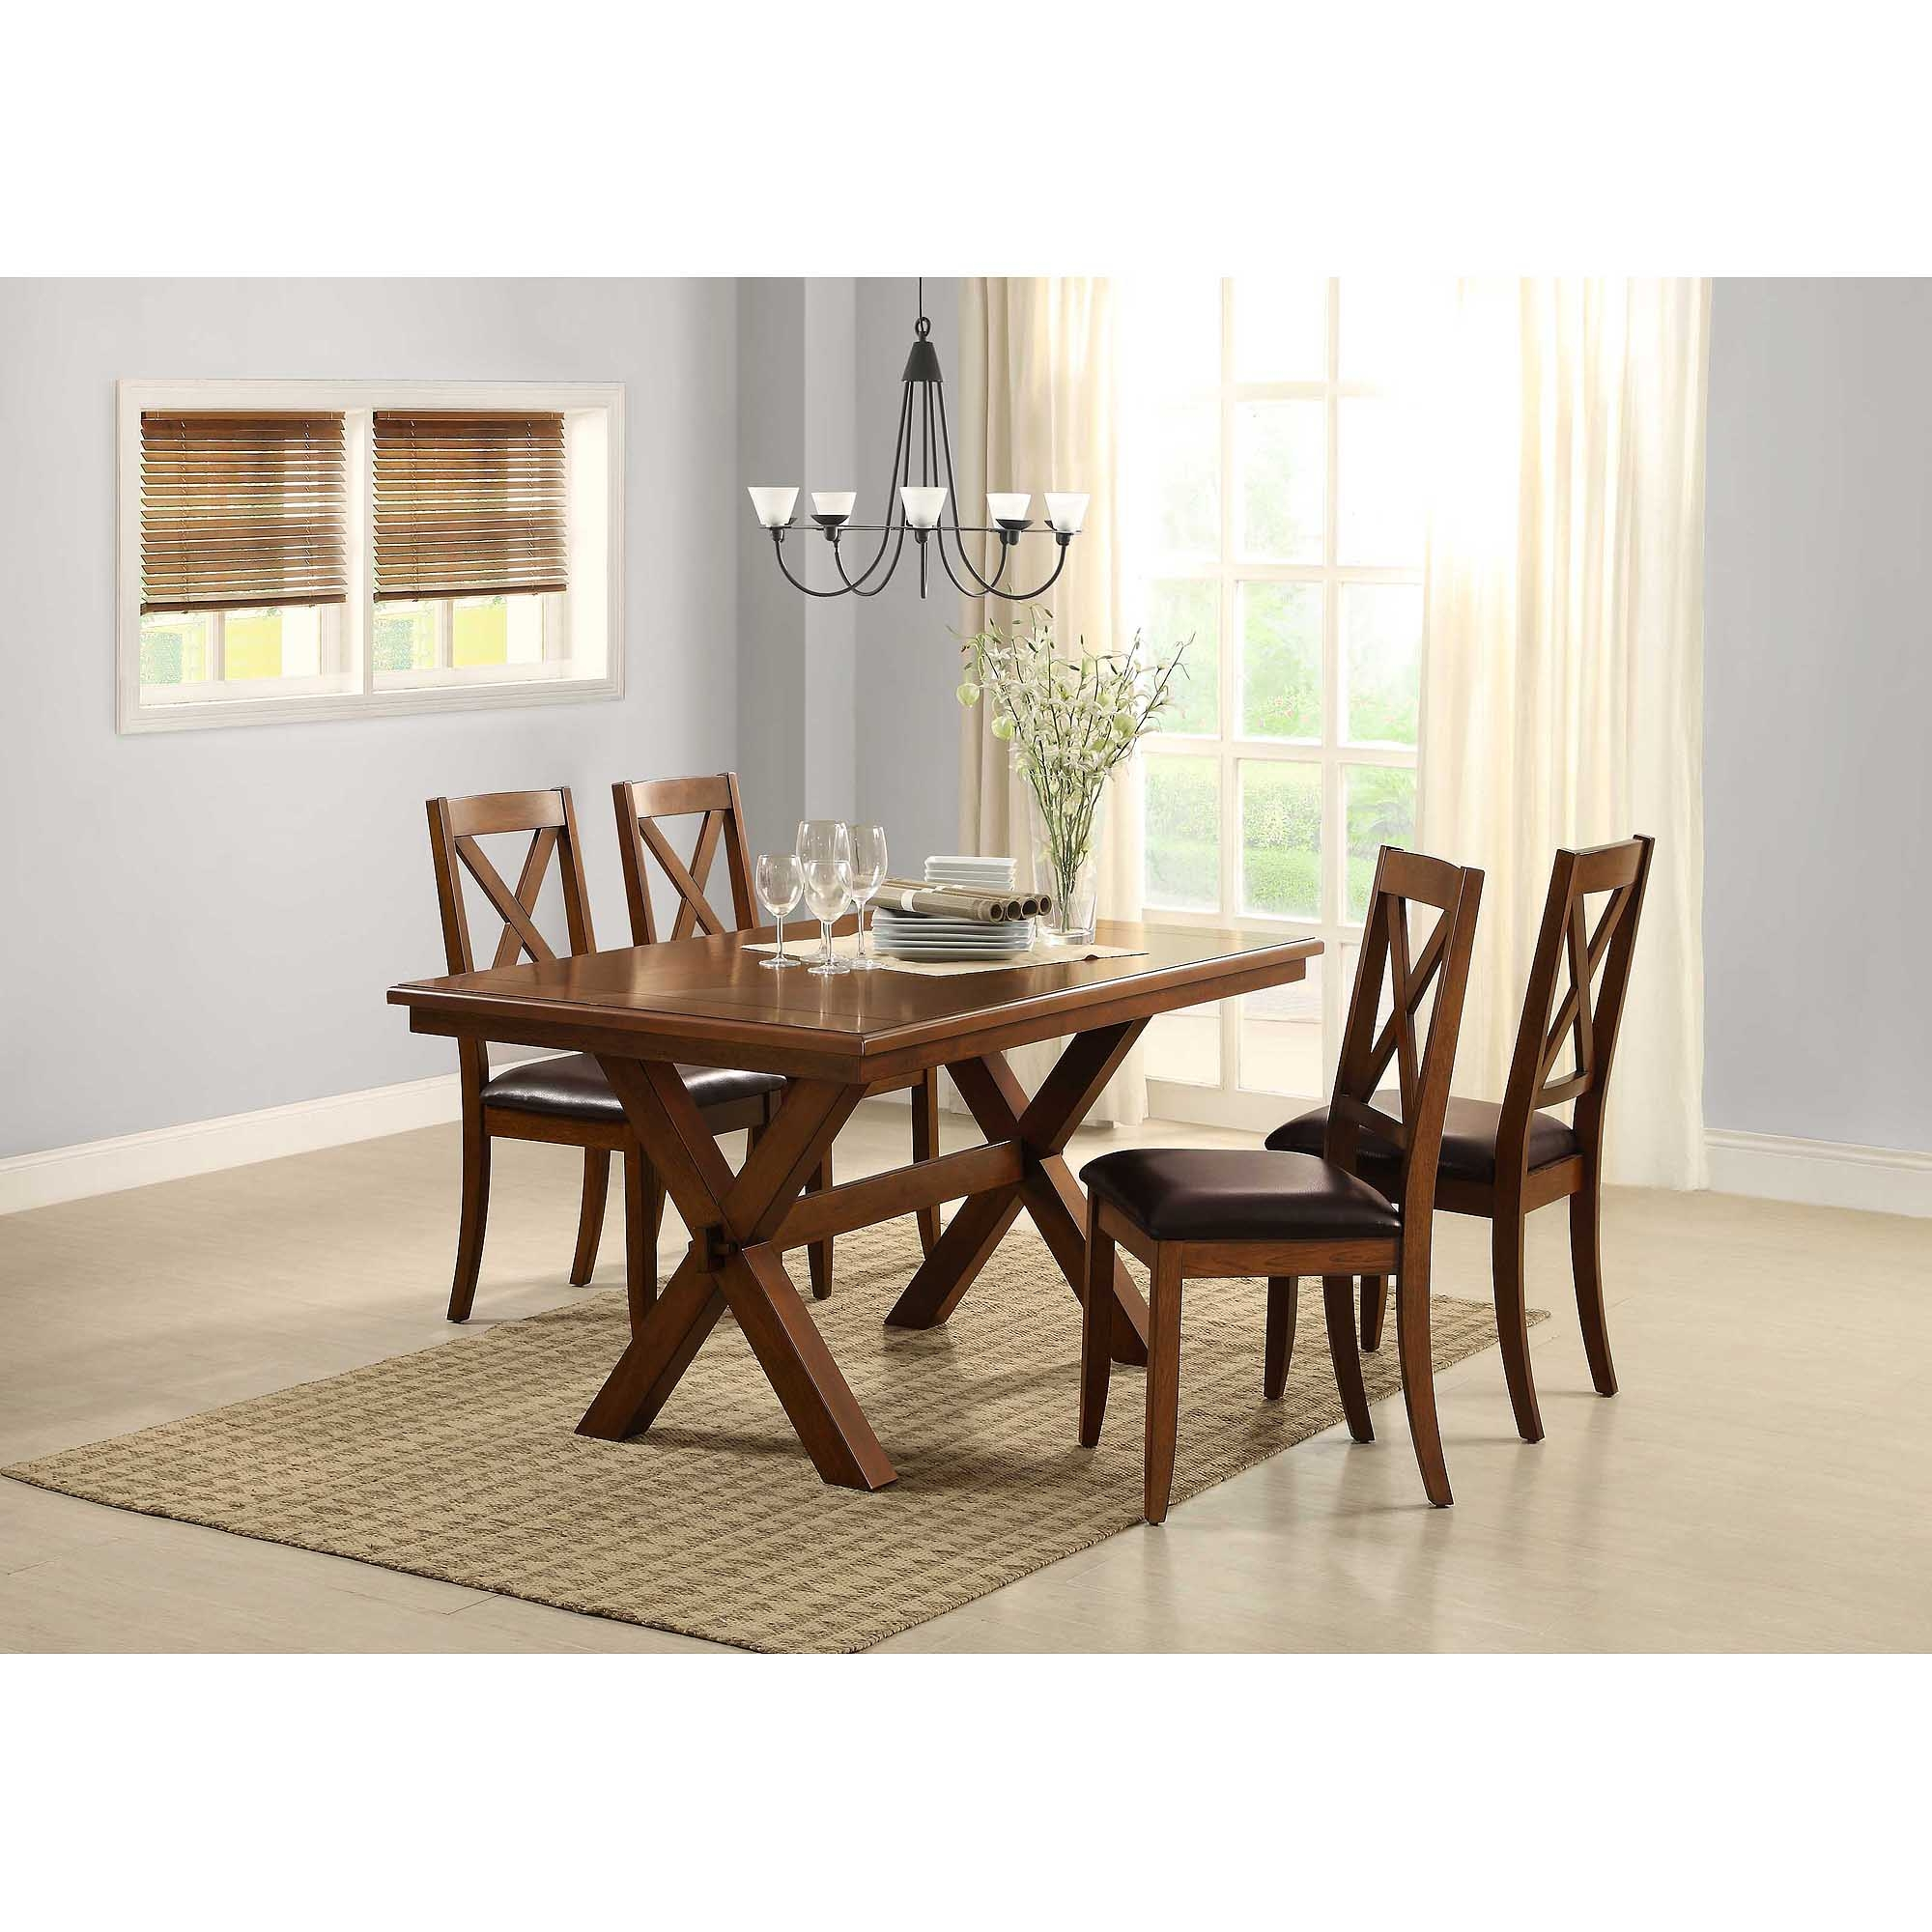 Walmart Dining Room Furniture: Dining Room Sets Walmart